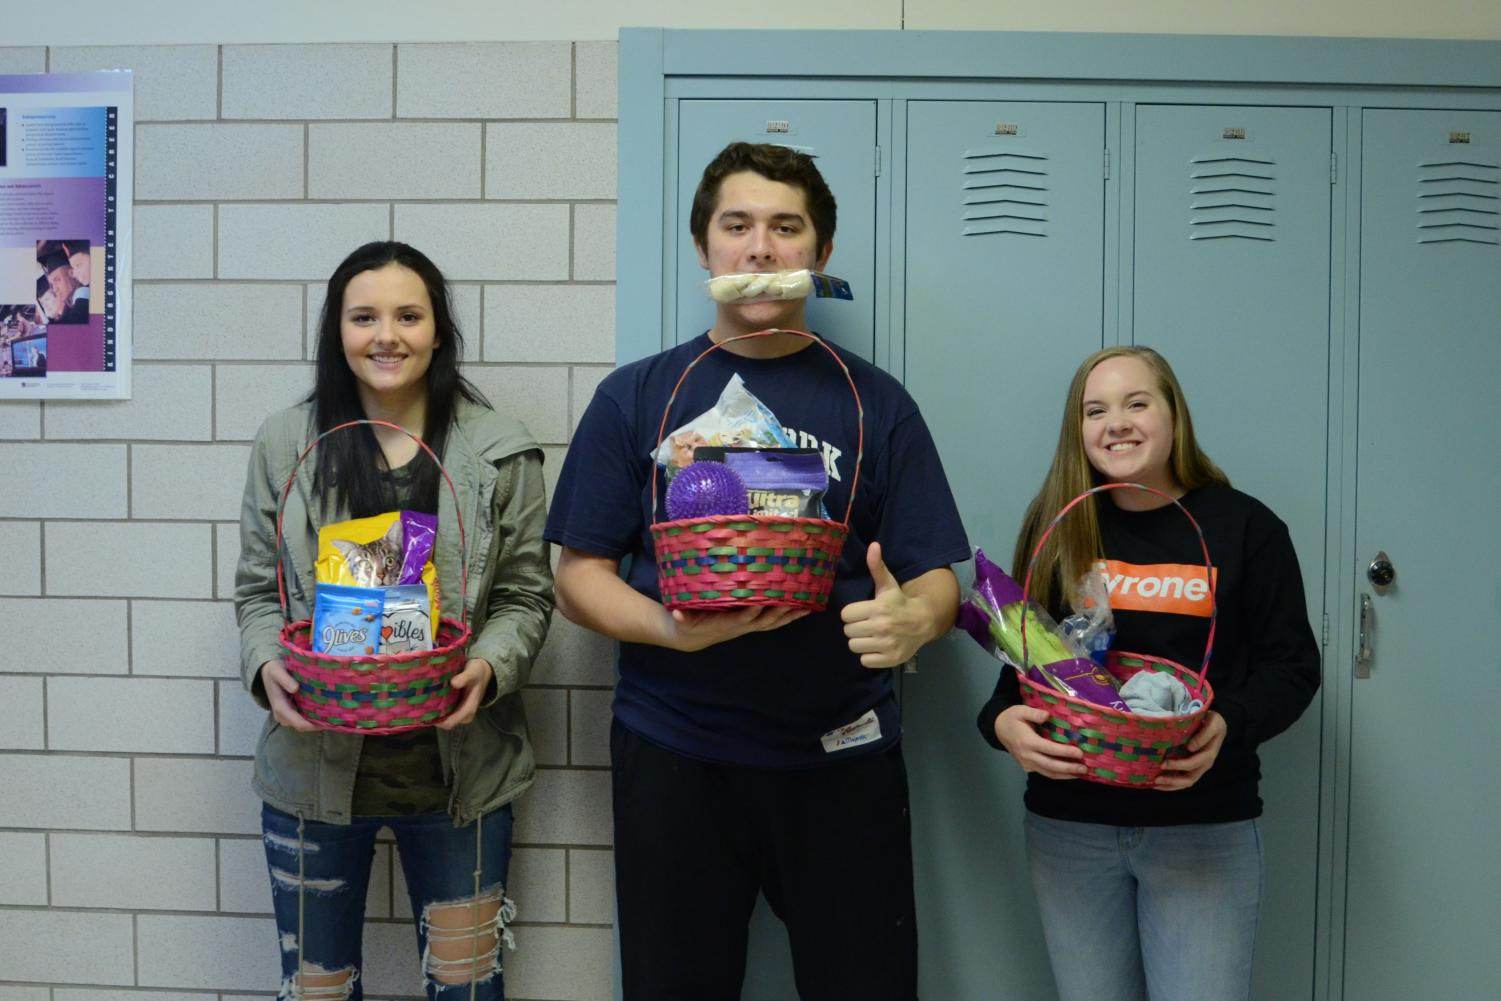 Last years winners with their prize baskets: Paige Hunter, Asher Christine , and Logan Johnston